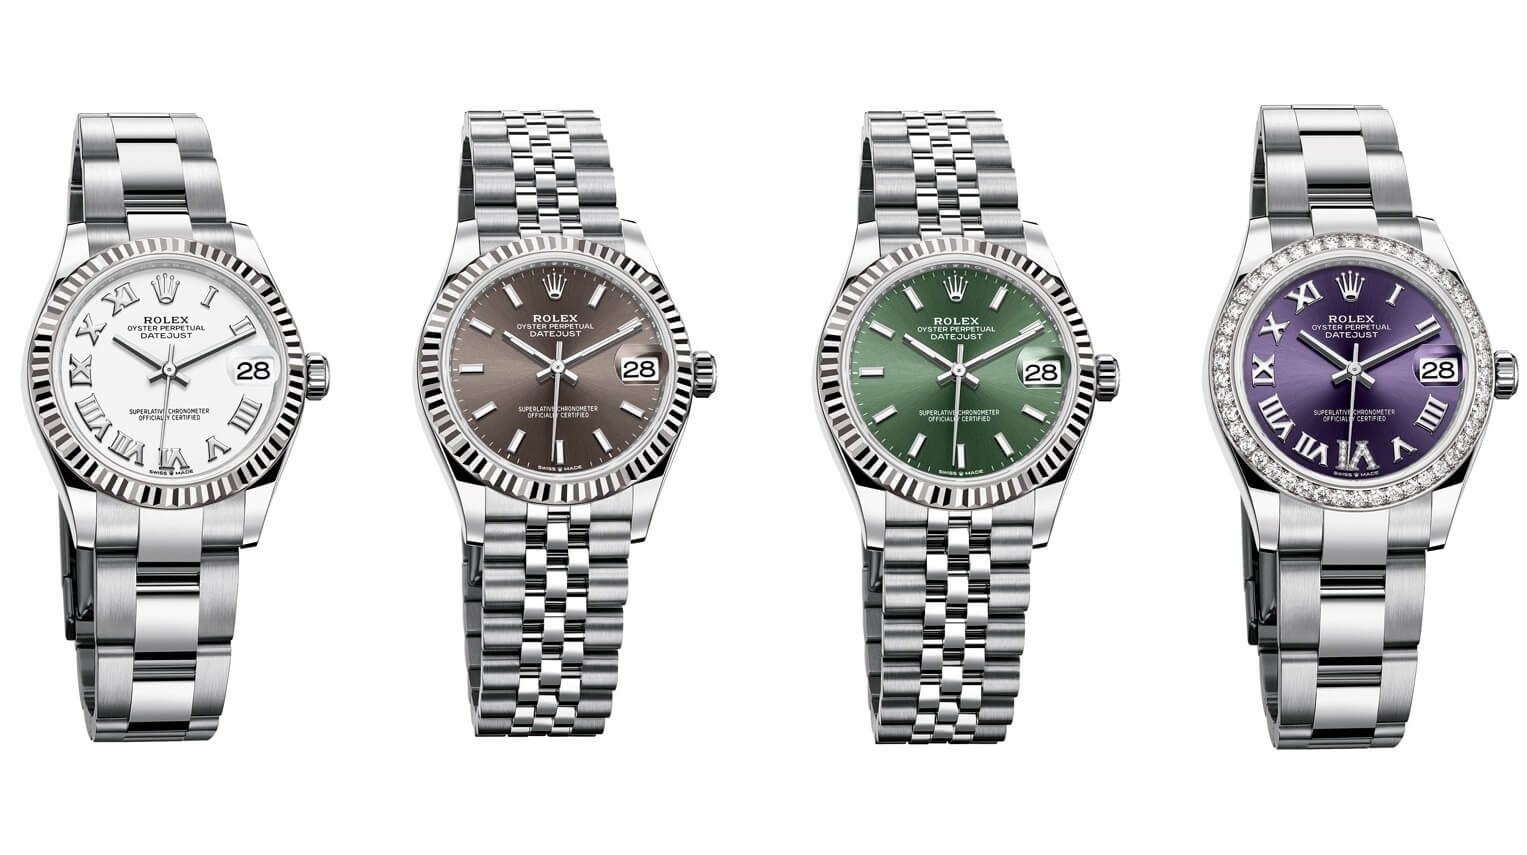 New Imitation Rolex Oyster Perpetual Datejust 31